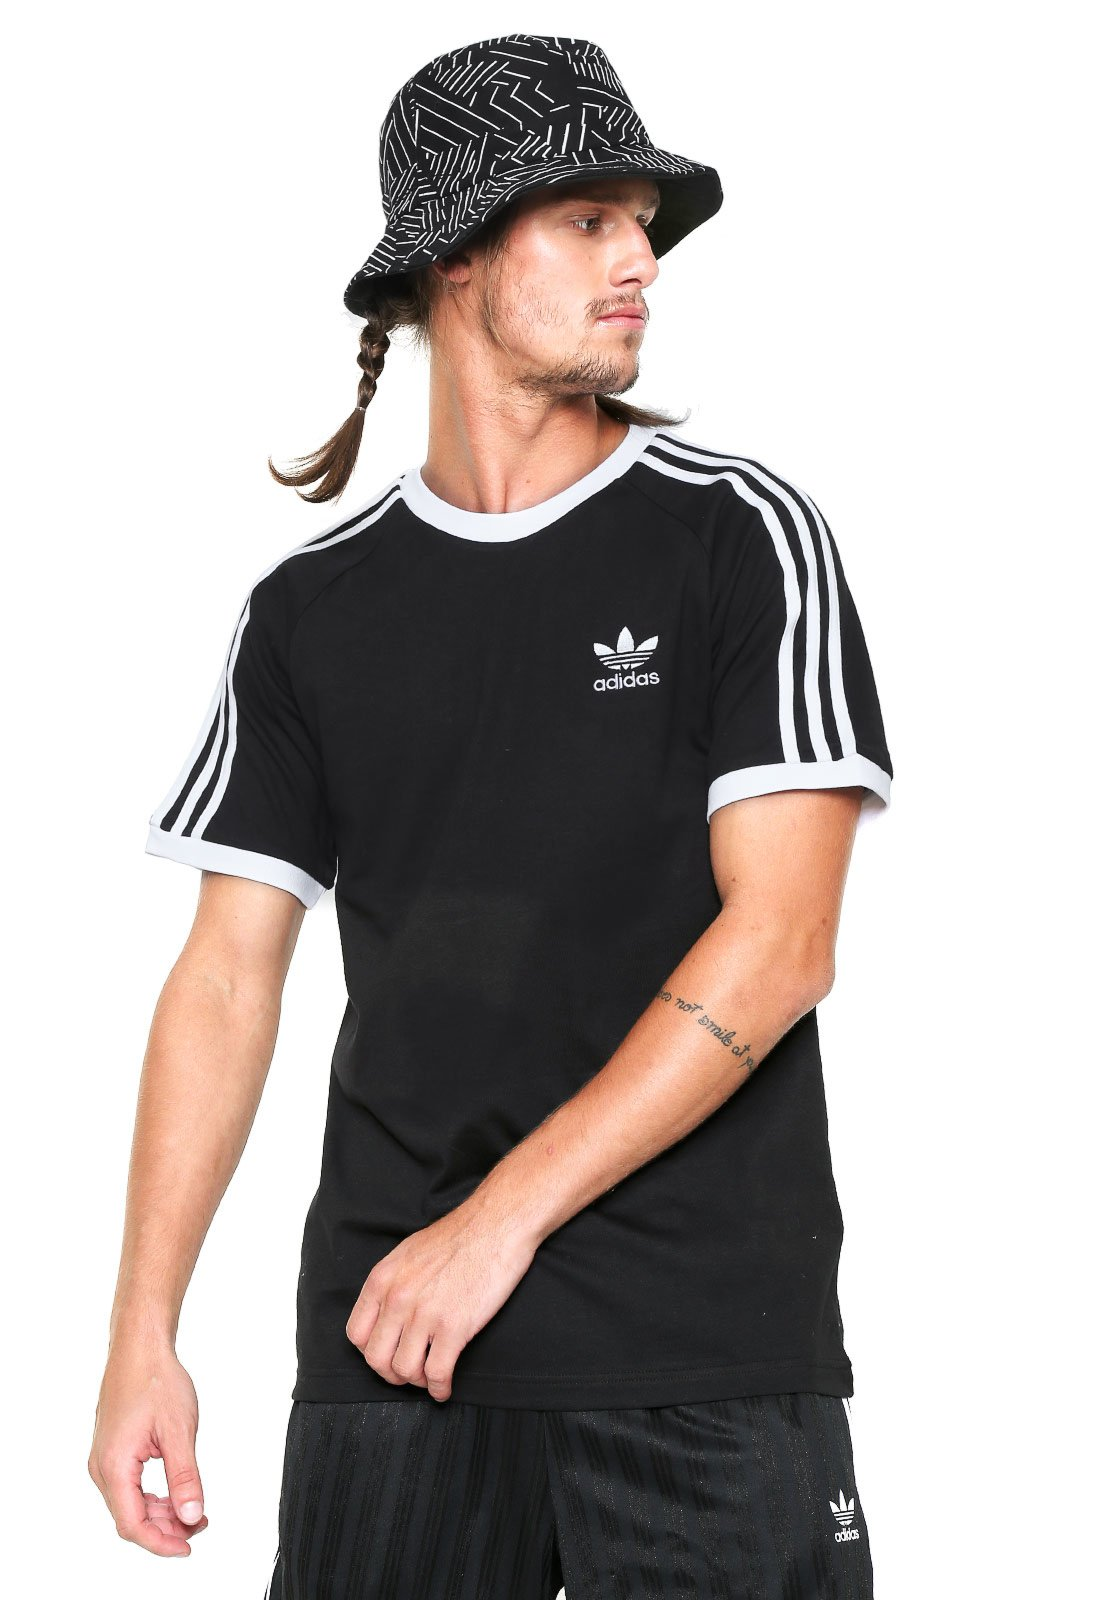 Camiseta adidas Originals 3 Stripes Preta